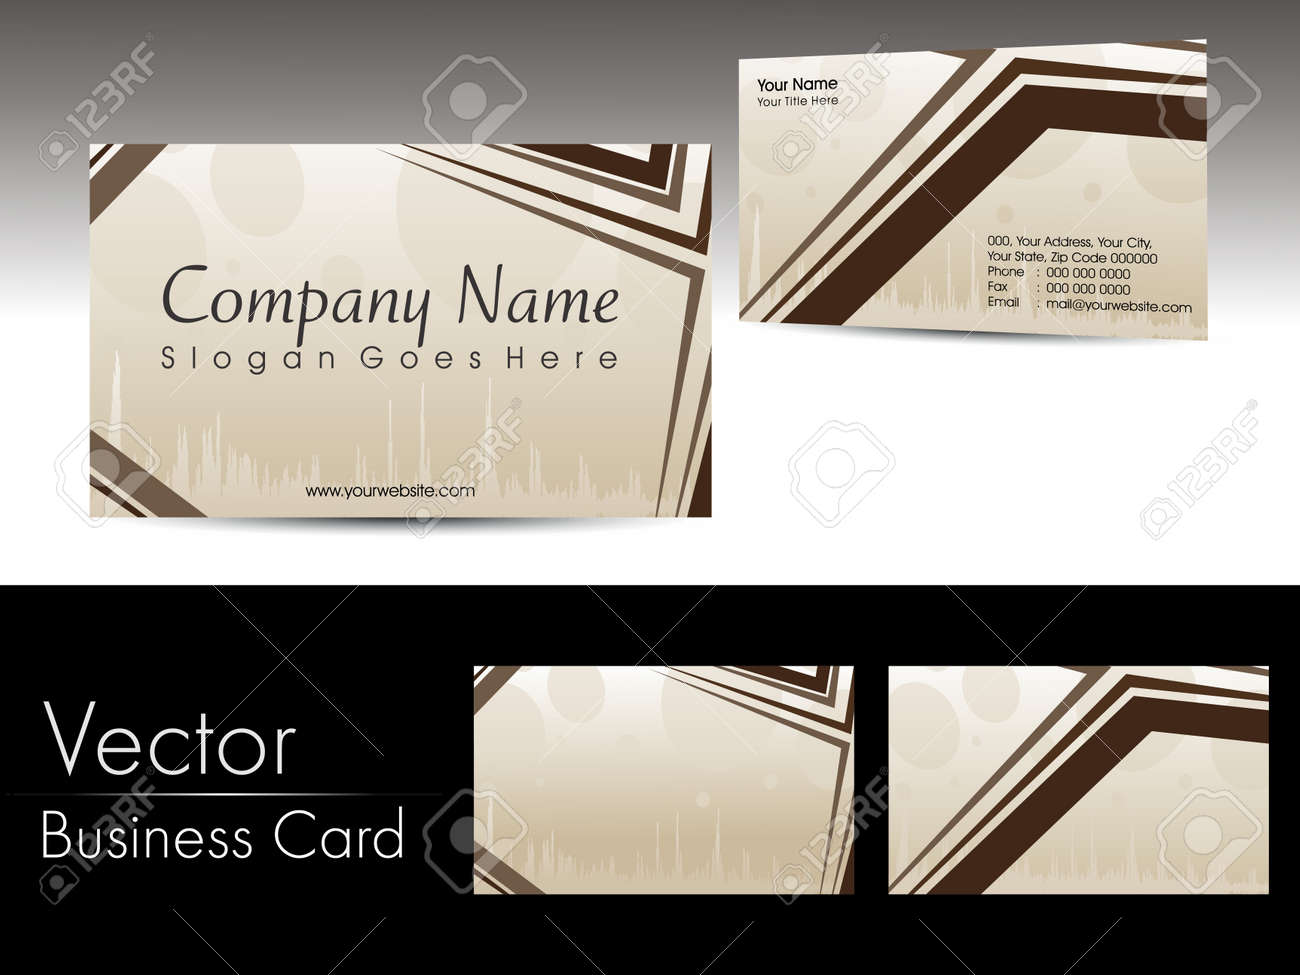 Plasma design business cards choice image free business cards abstract business card royalty free free rental agreement template abstract artwork design vector corporate business cards magicingreecefo Choice Image